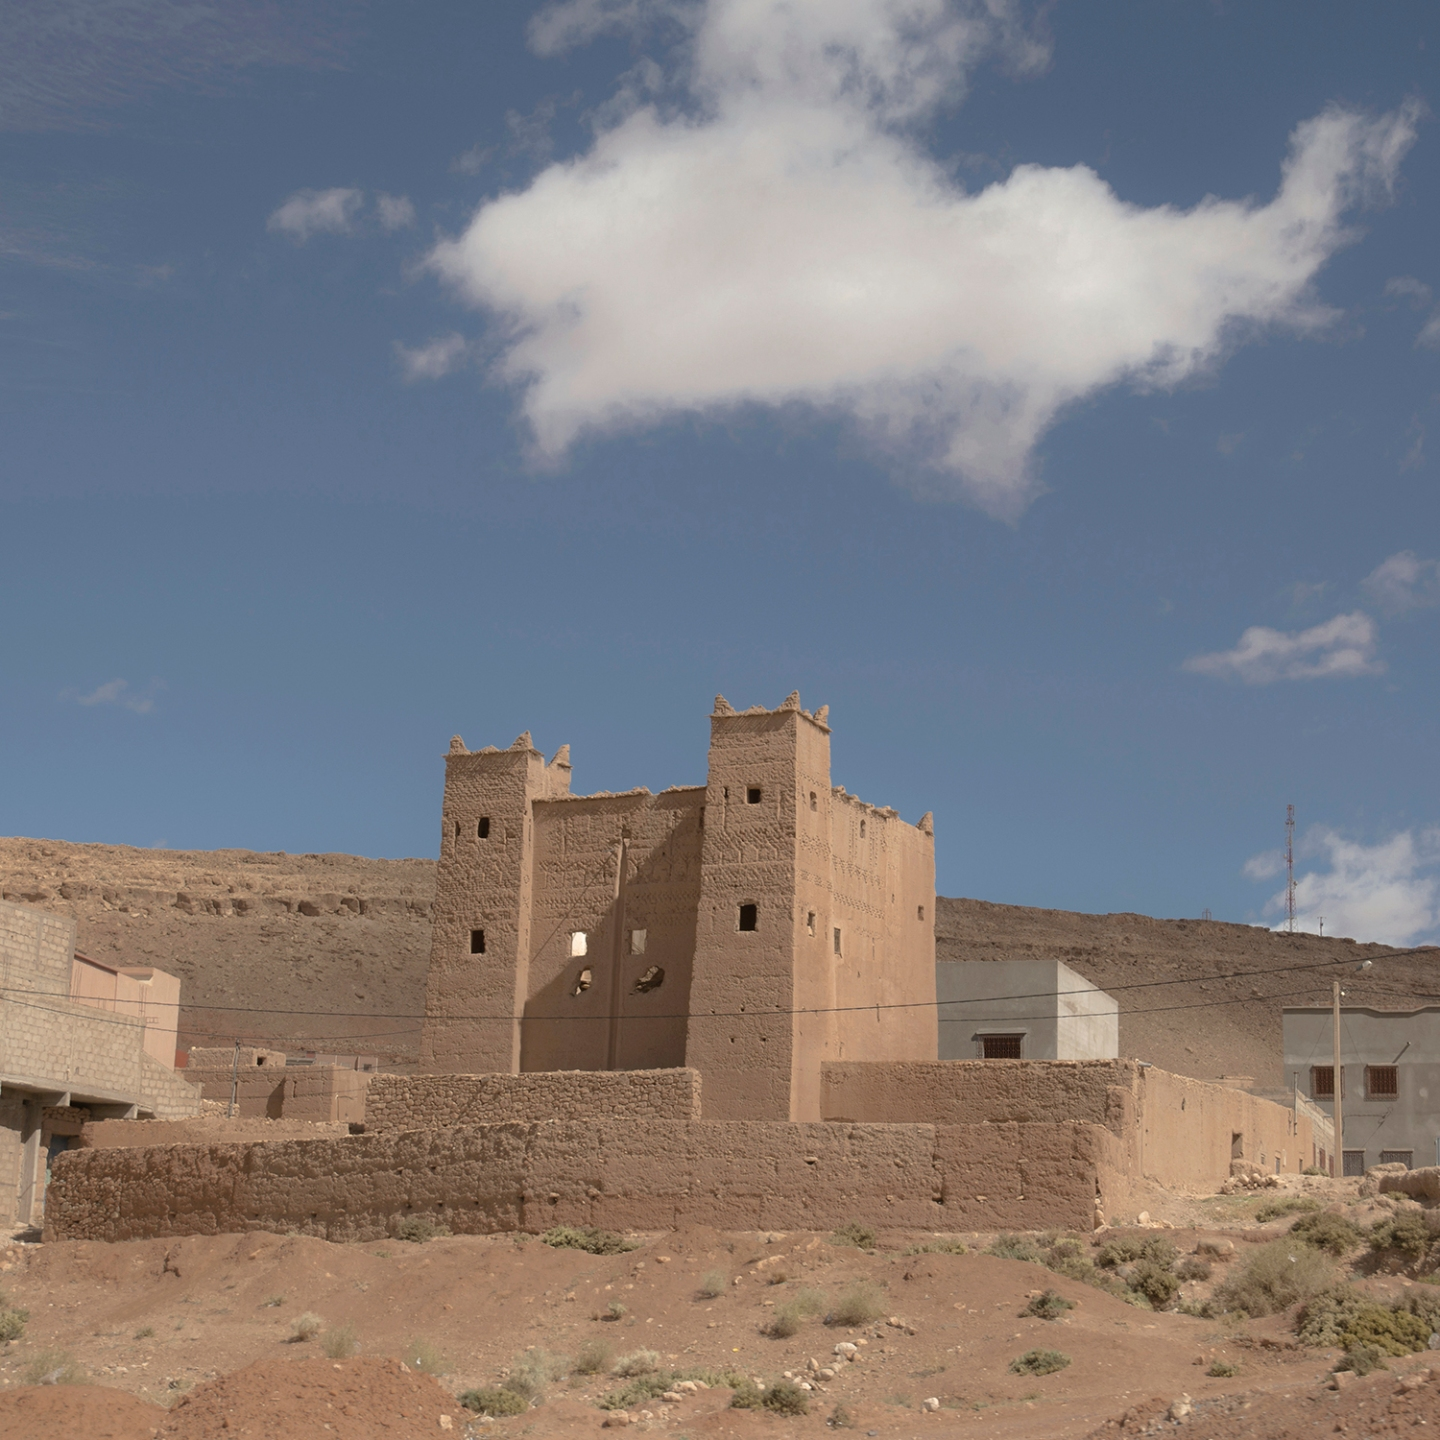 color-corrected-the-kasbah-and-the-cloud-by-peter-ydeen